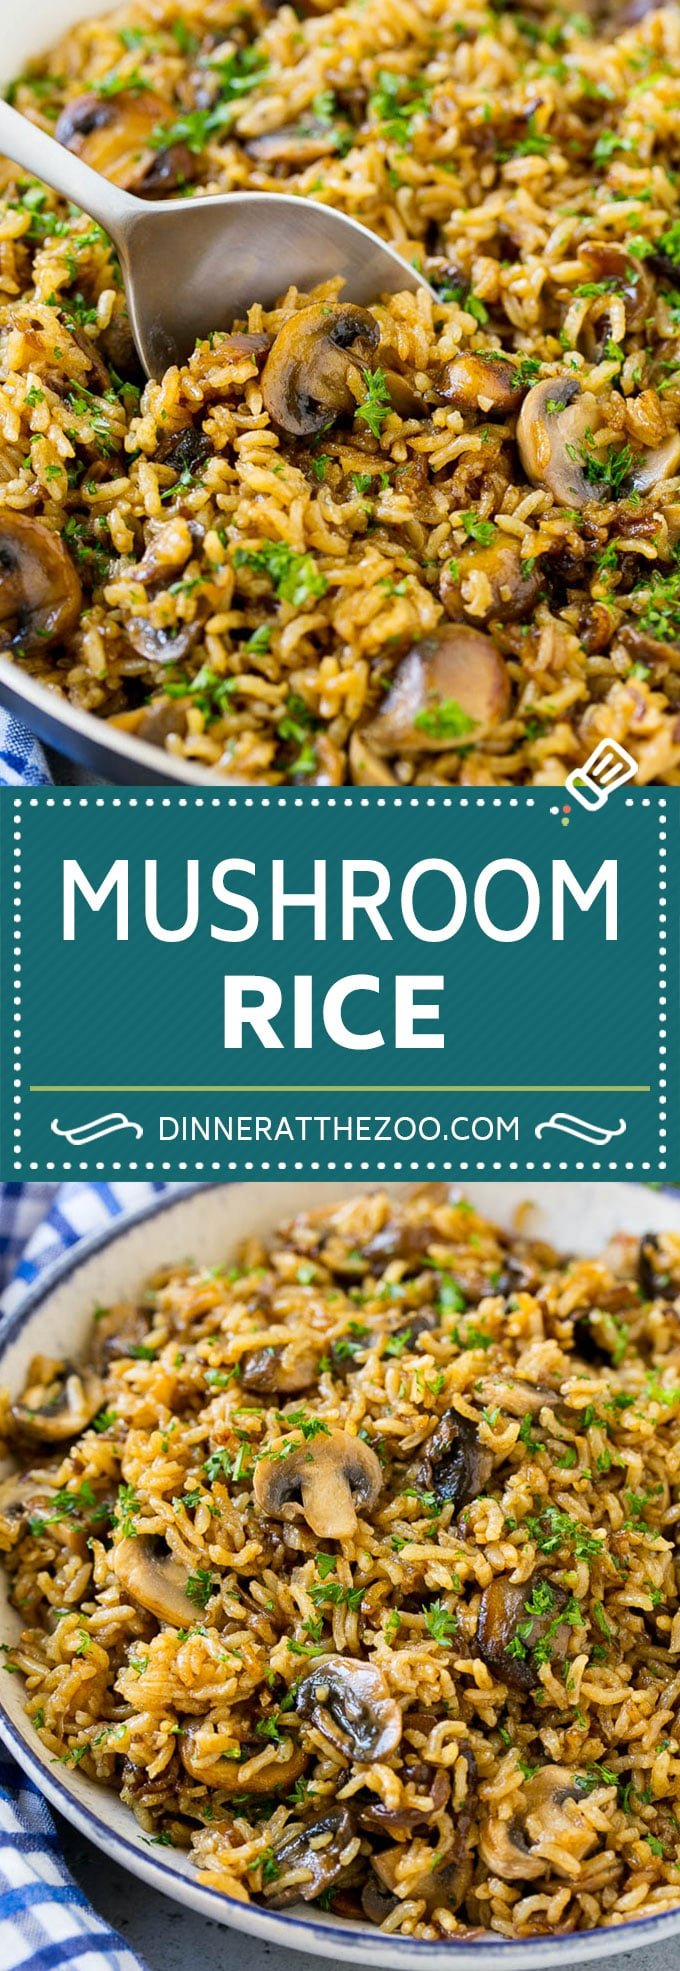 Mushroom Rice Recipe | Baked Rice | Rice Pilaf #rice #mushrooms #sidedish #dinner #dinneratthezoo